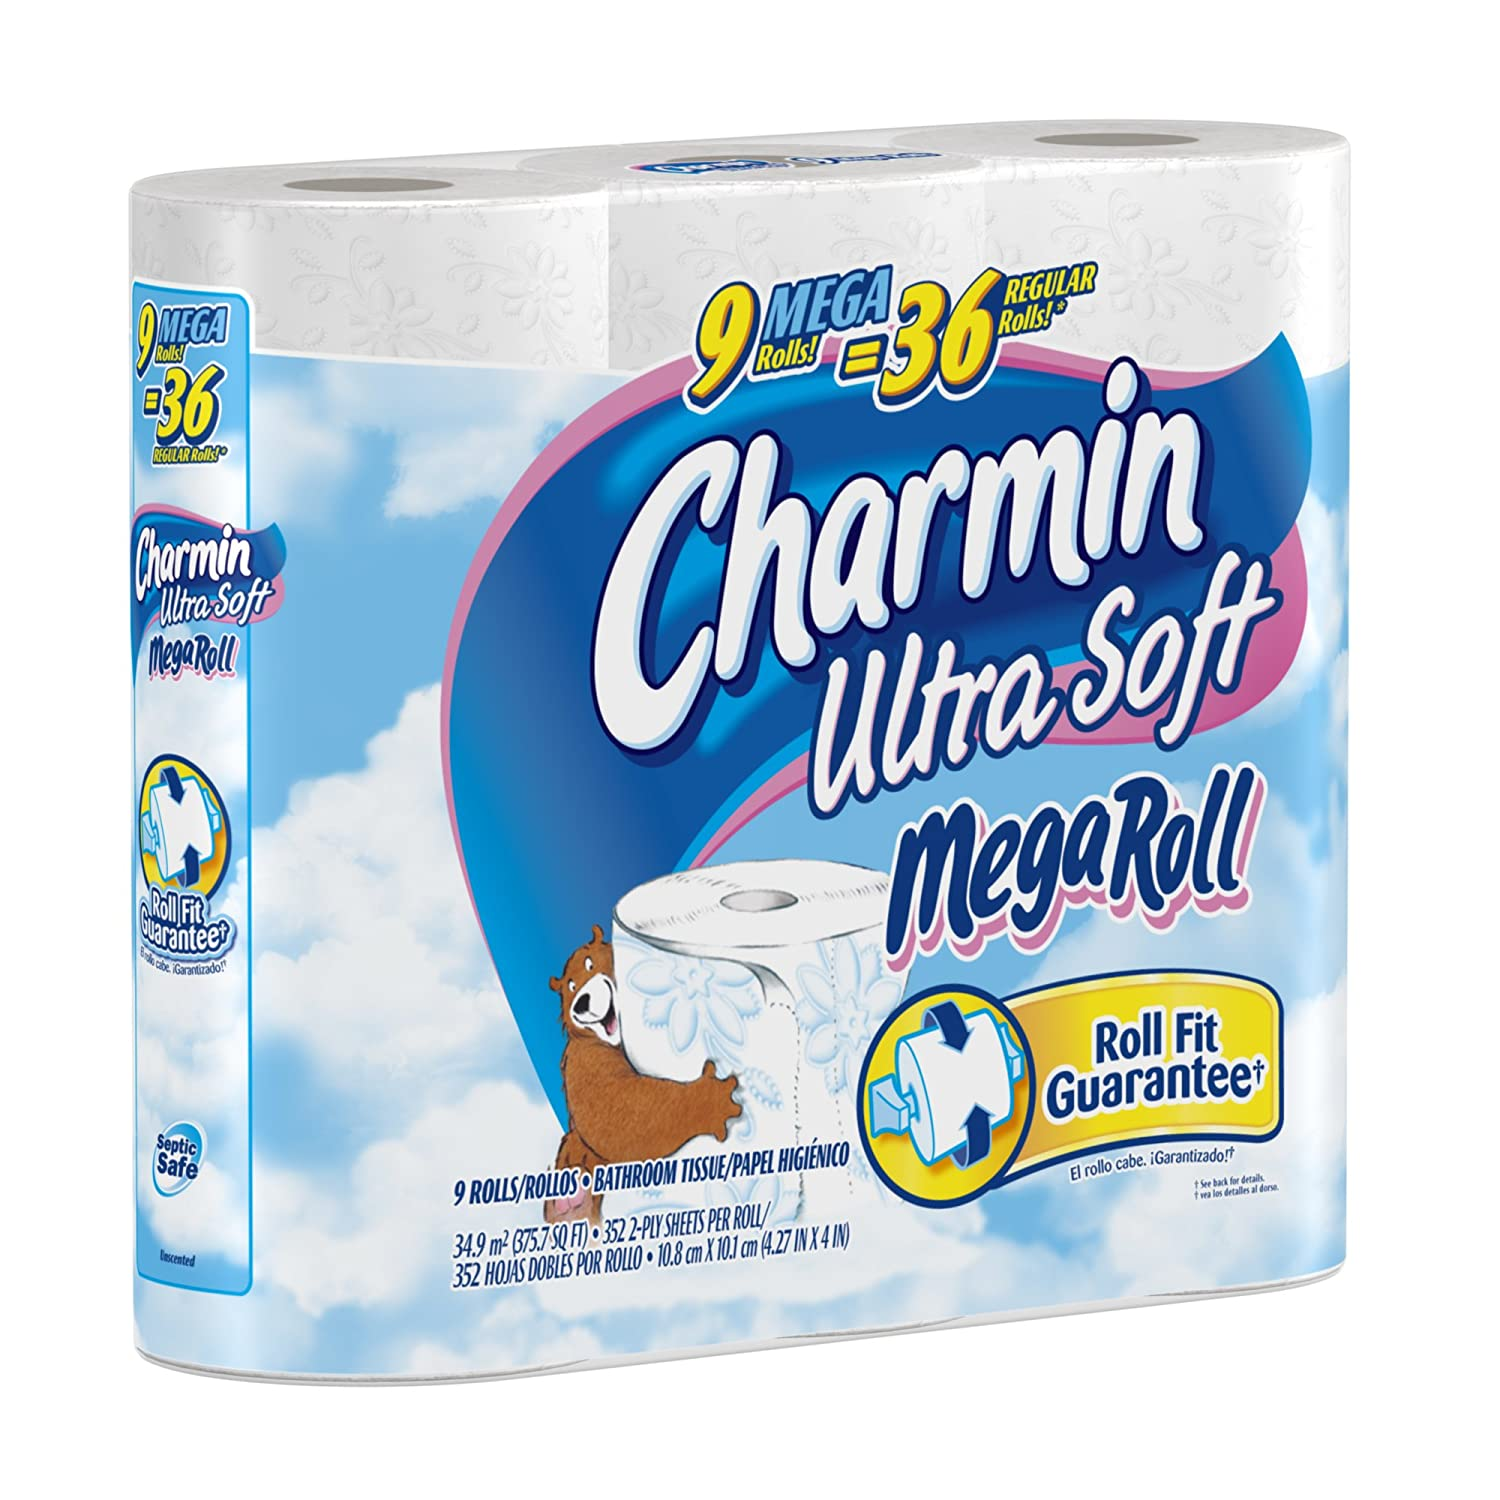 Amazon.com: Charmin Ultra Soft Mega Rolls, 9-Count (Pack of 4): Health & Personal Care